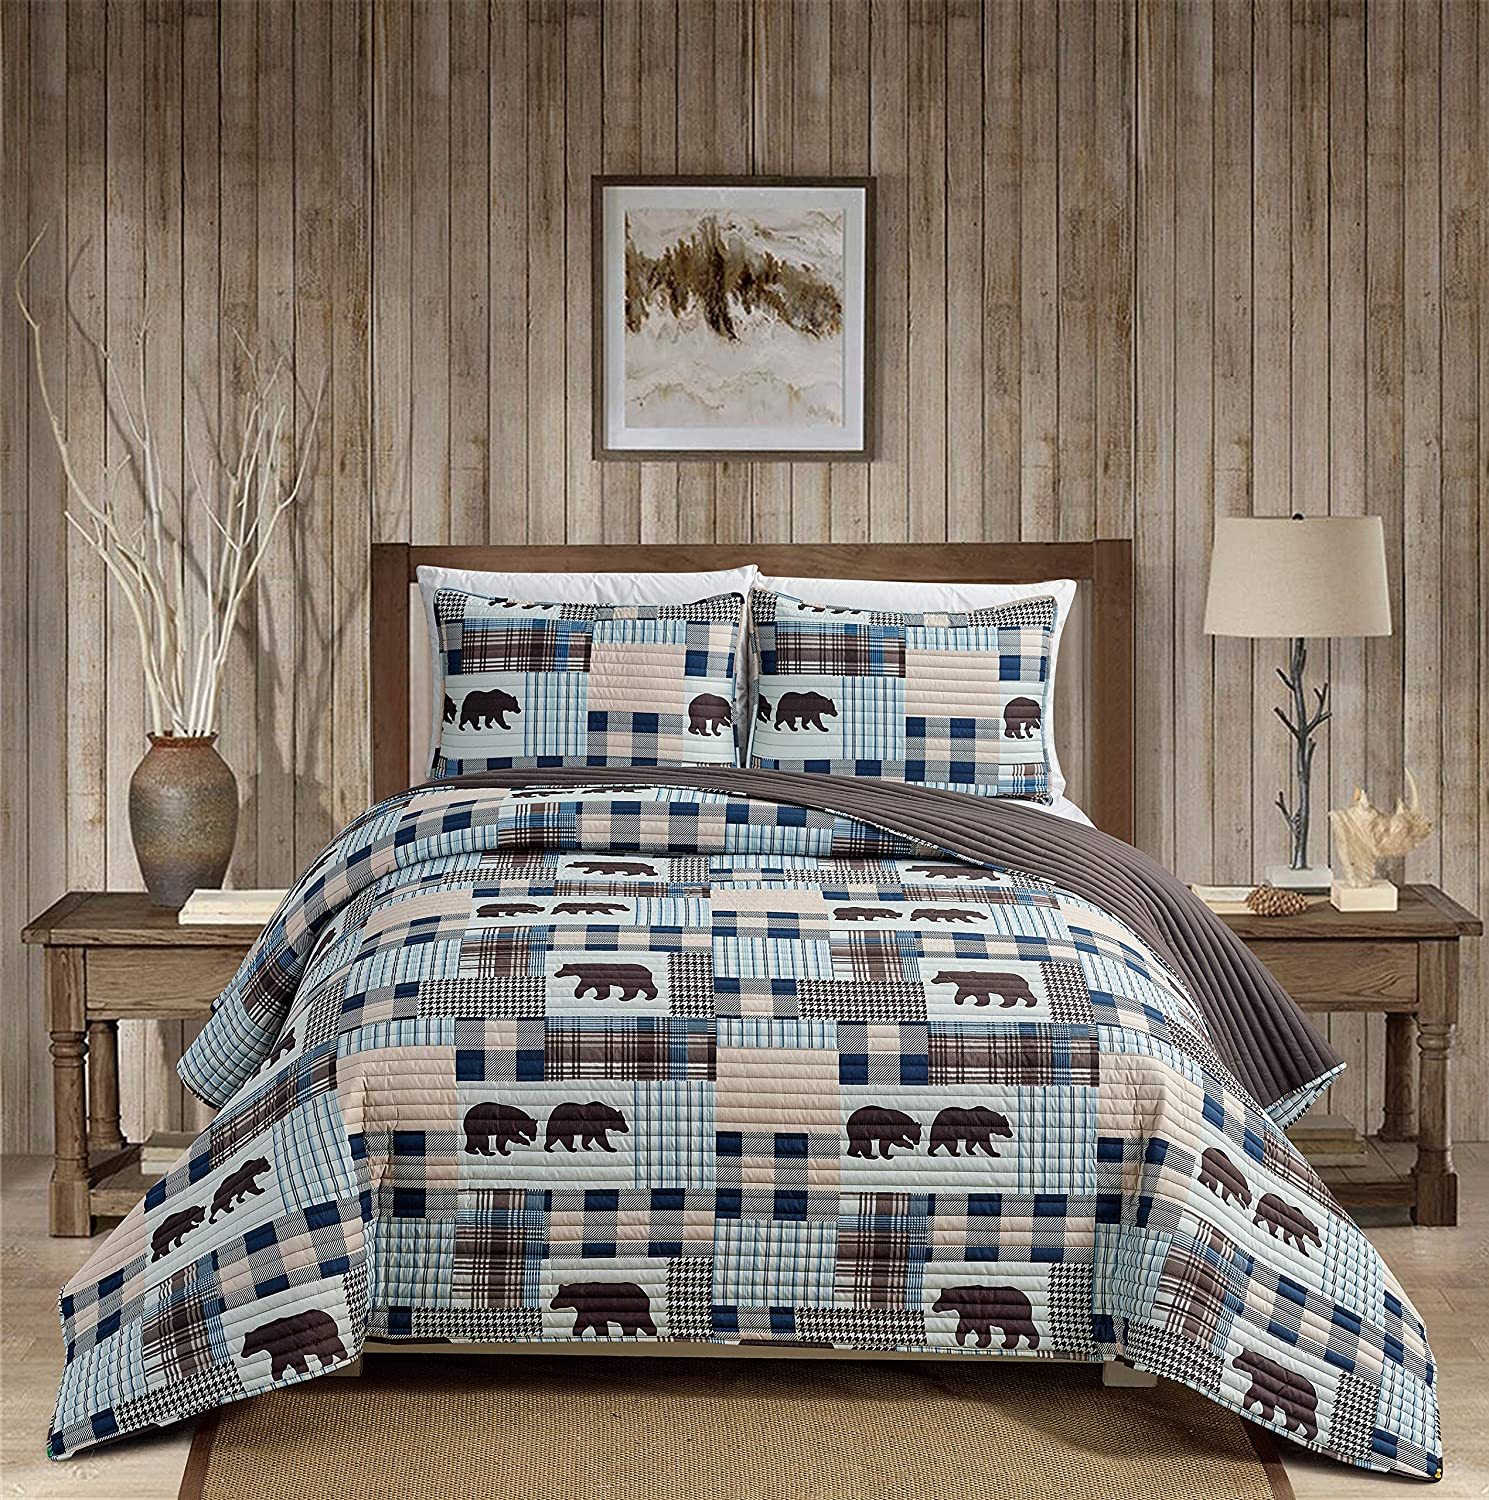 Amazon Com Rustic Modern Farmhouse Cabin Lodge Stripe Quilted Bedspread Coverlet Bedding Set With Patchwork Of Grizzly Bears And Buffalo Plaid Check Houndstooth Patterns Beige Blue Western 2 King Cal King Home Kitchen